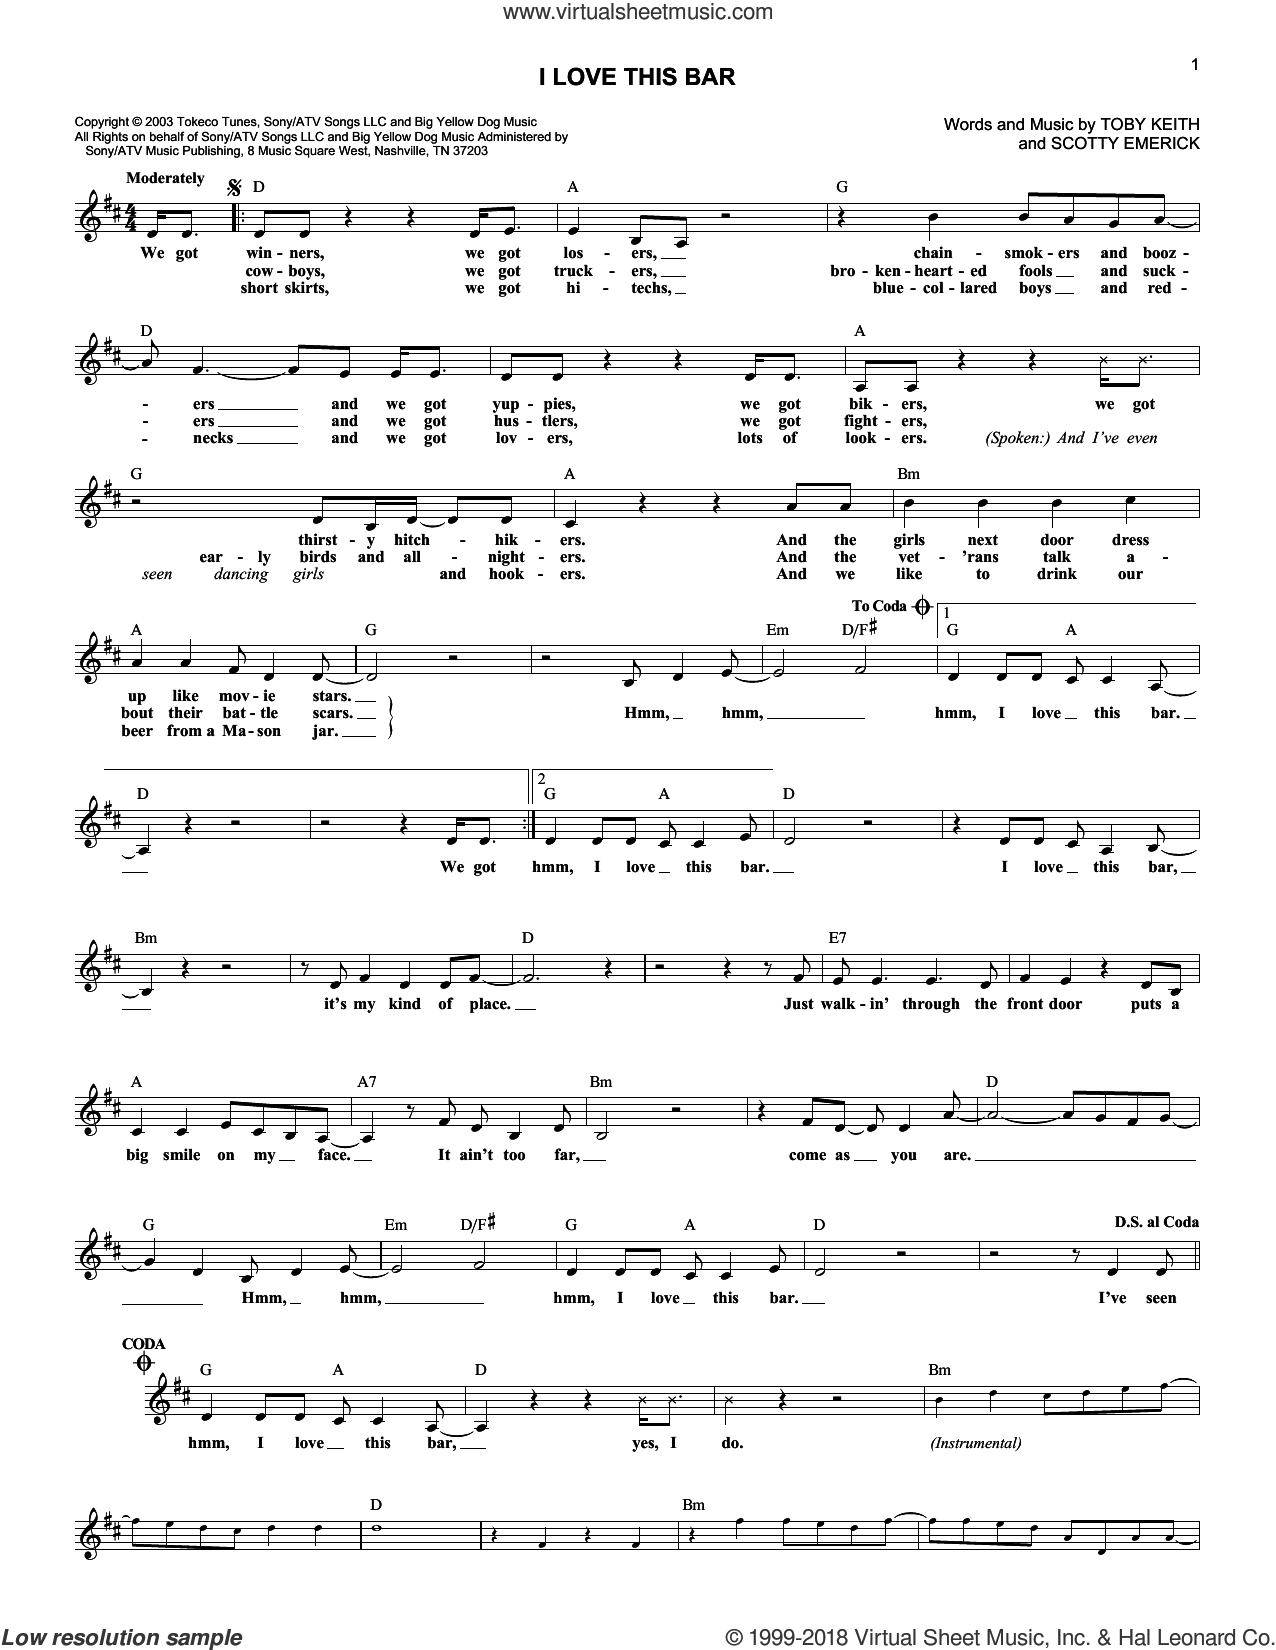 I Love This Bar sheet music for voice and other instruments (fake book) by Scotty Emerick